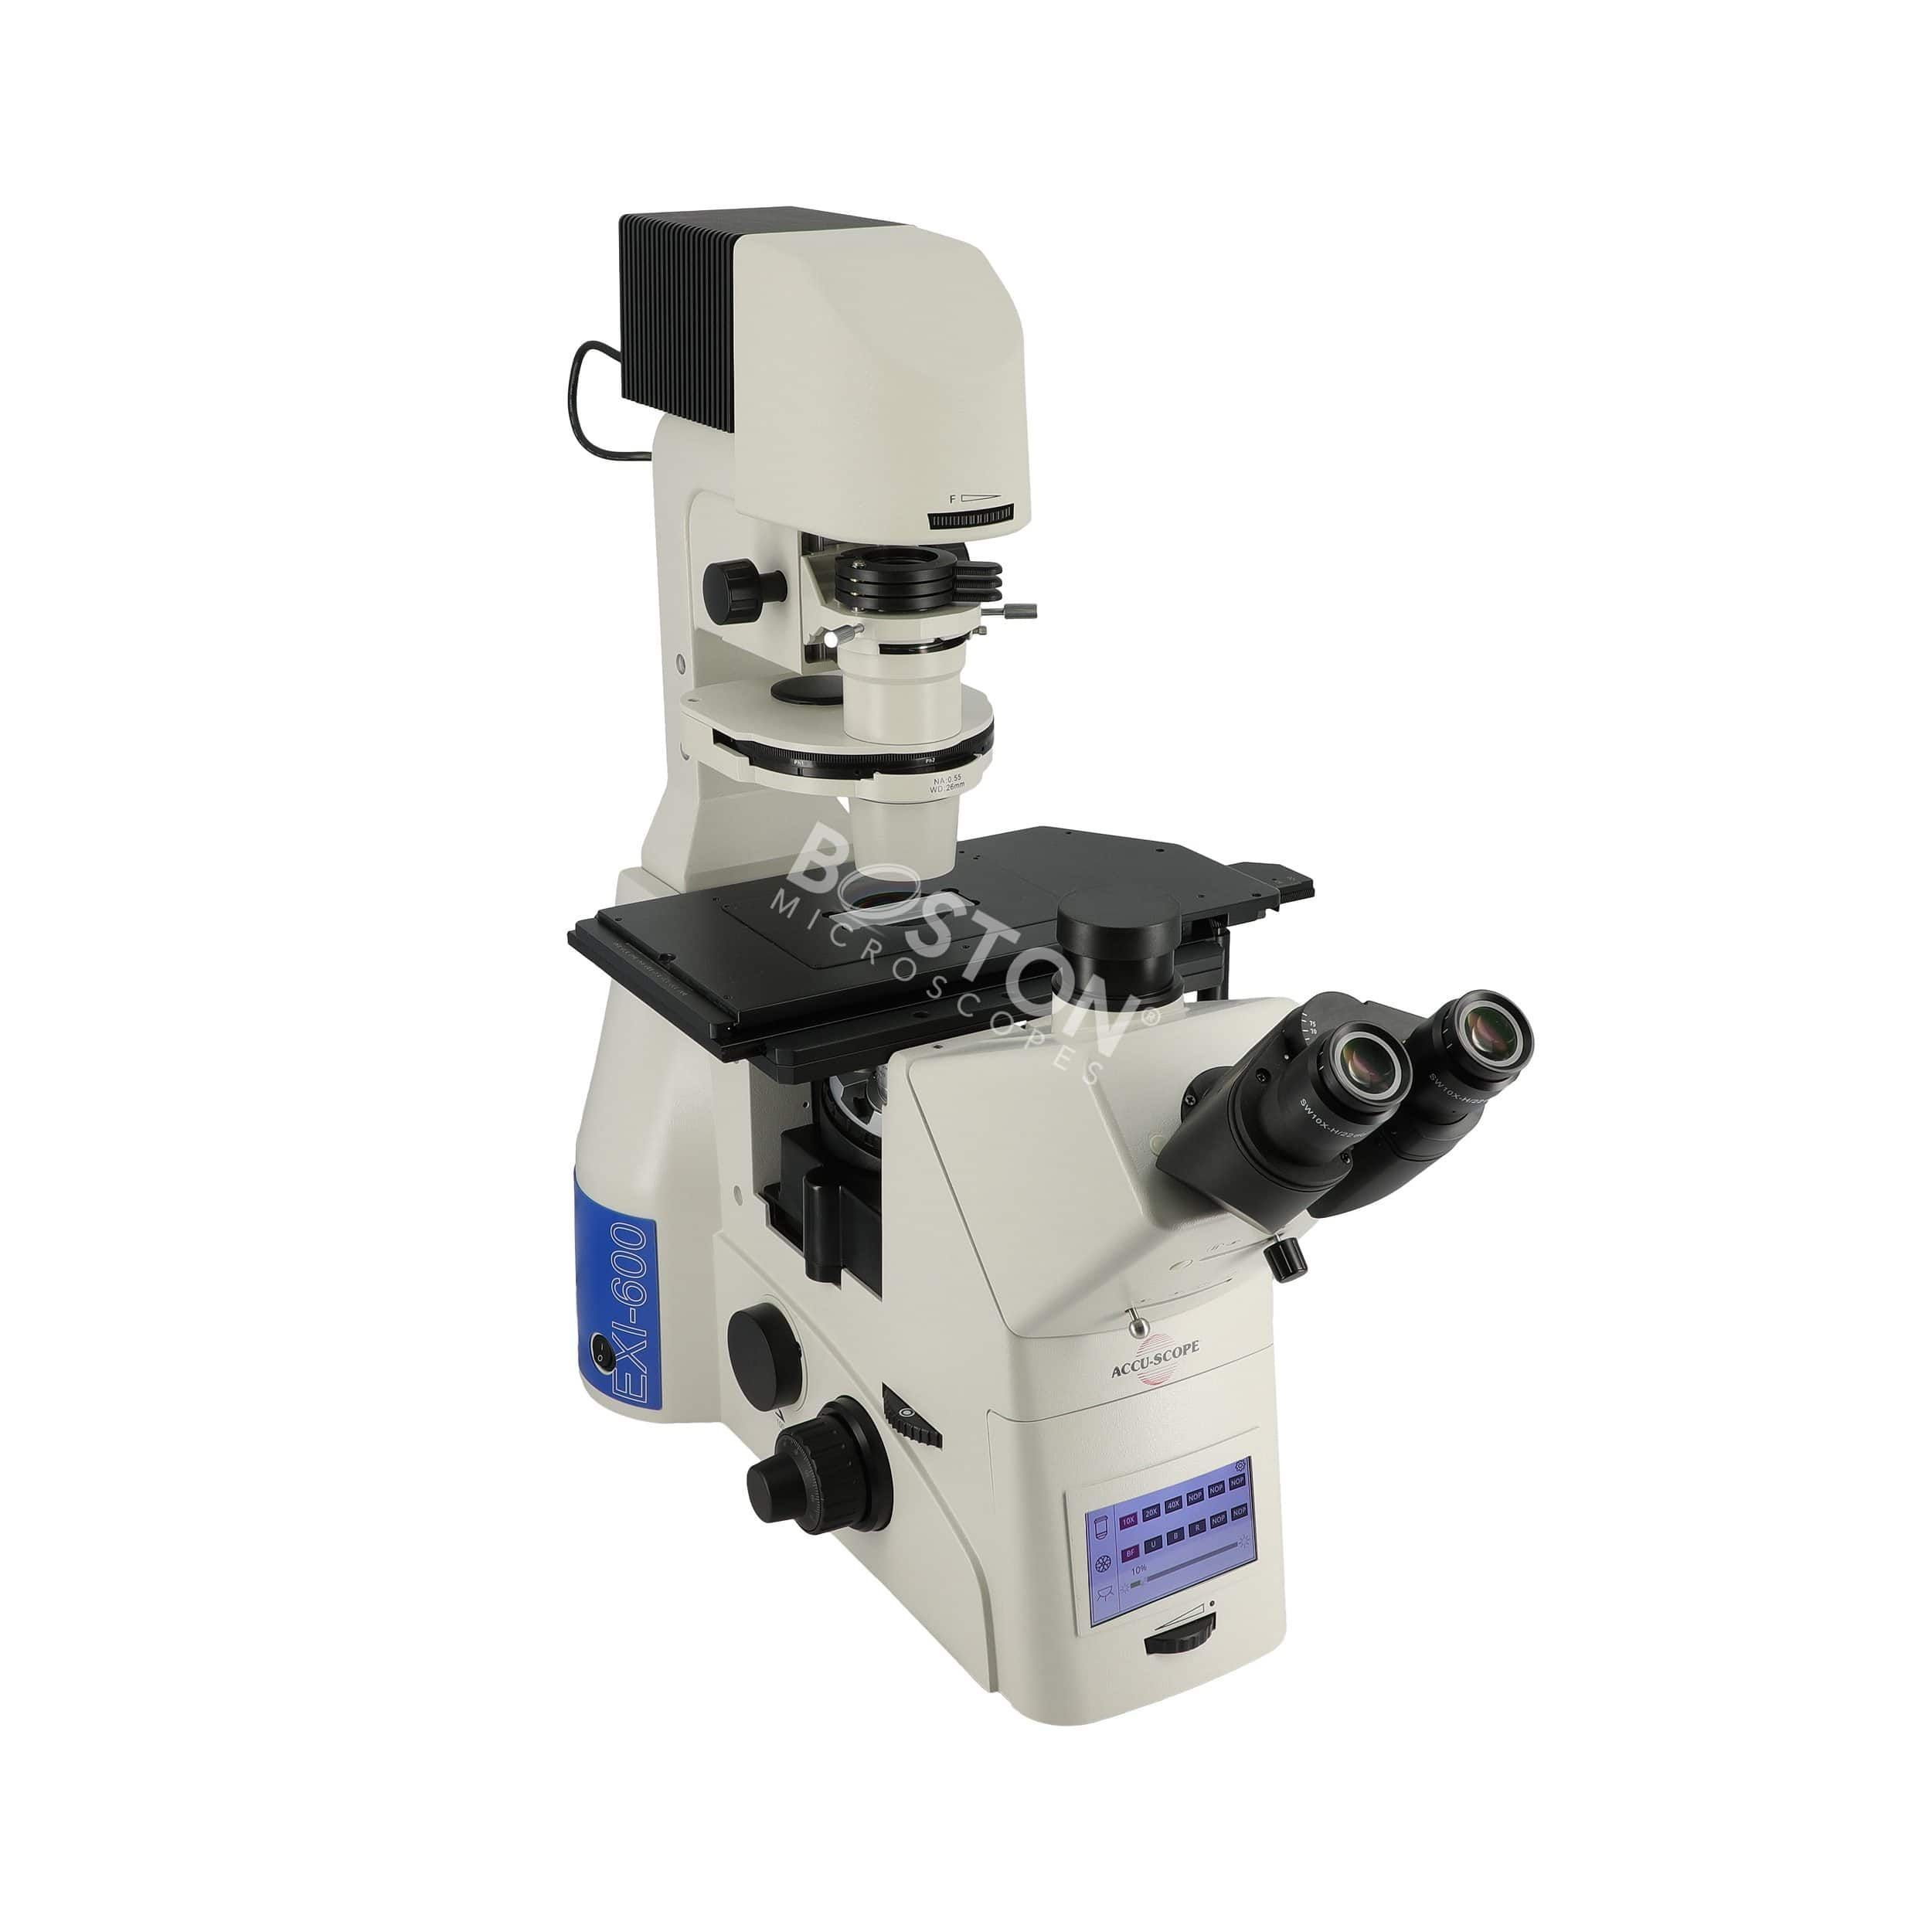 Accu-Scope EXI-600 LED Fluorescence Phase Contrast Inverted Microscope